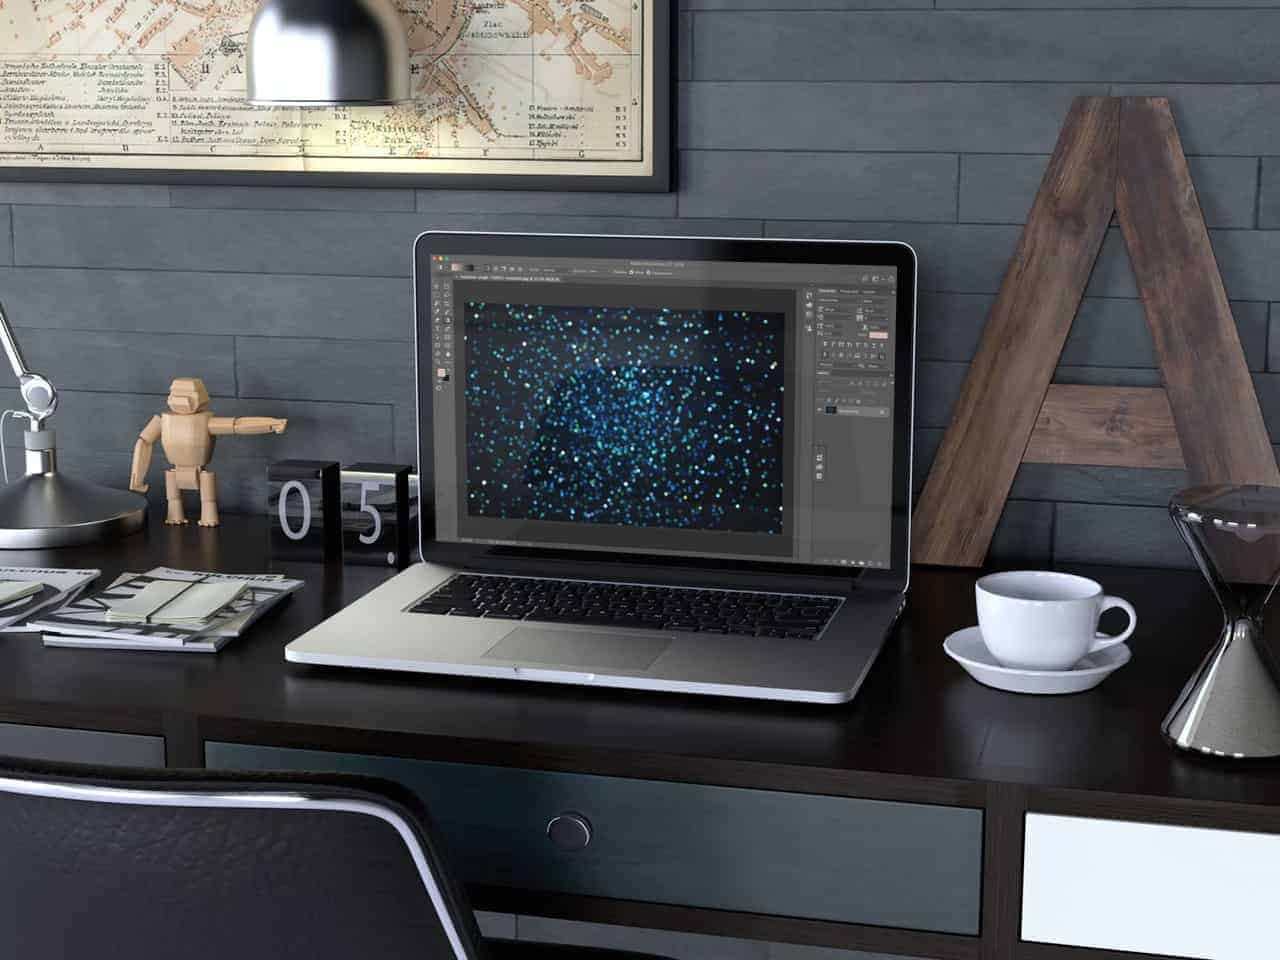 Best Laptop for Graphic Rendering